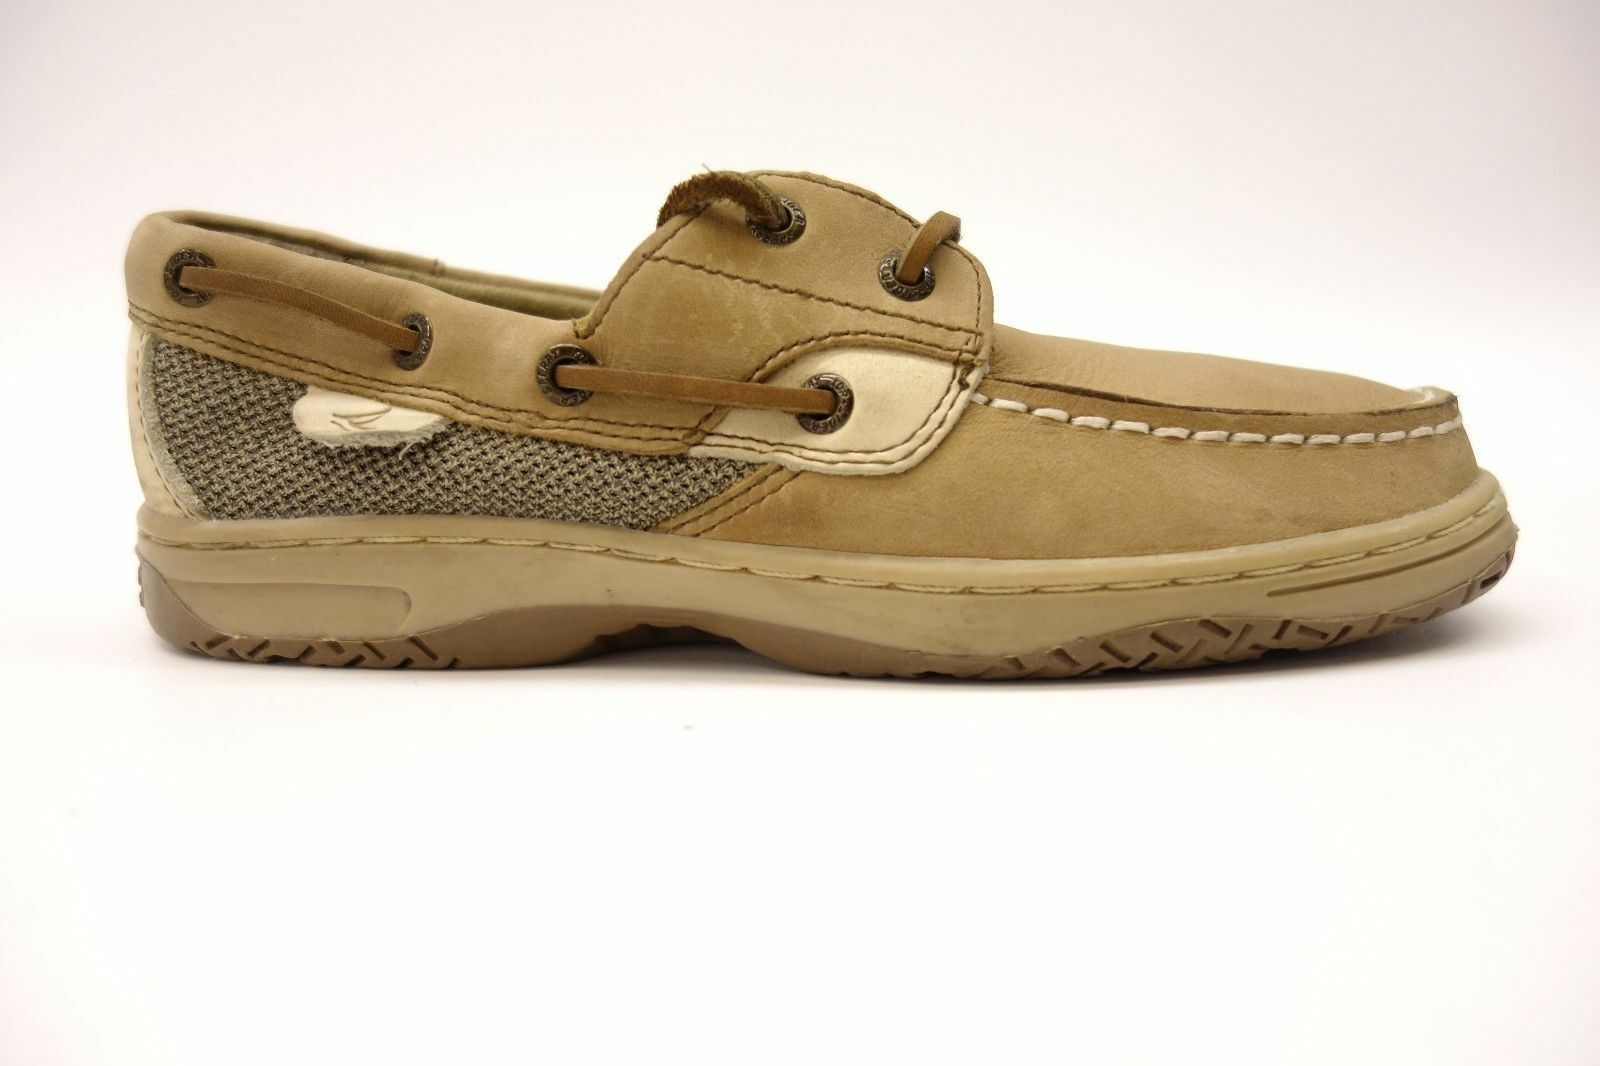 NEW -  SPERRY TOP SIDER Women's 'blueEFISH 2 EYE' Tan CASUAL LOAFER  SHOES - 9